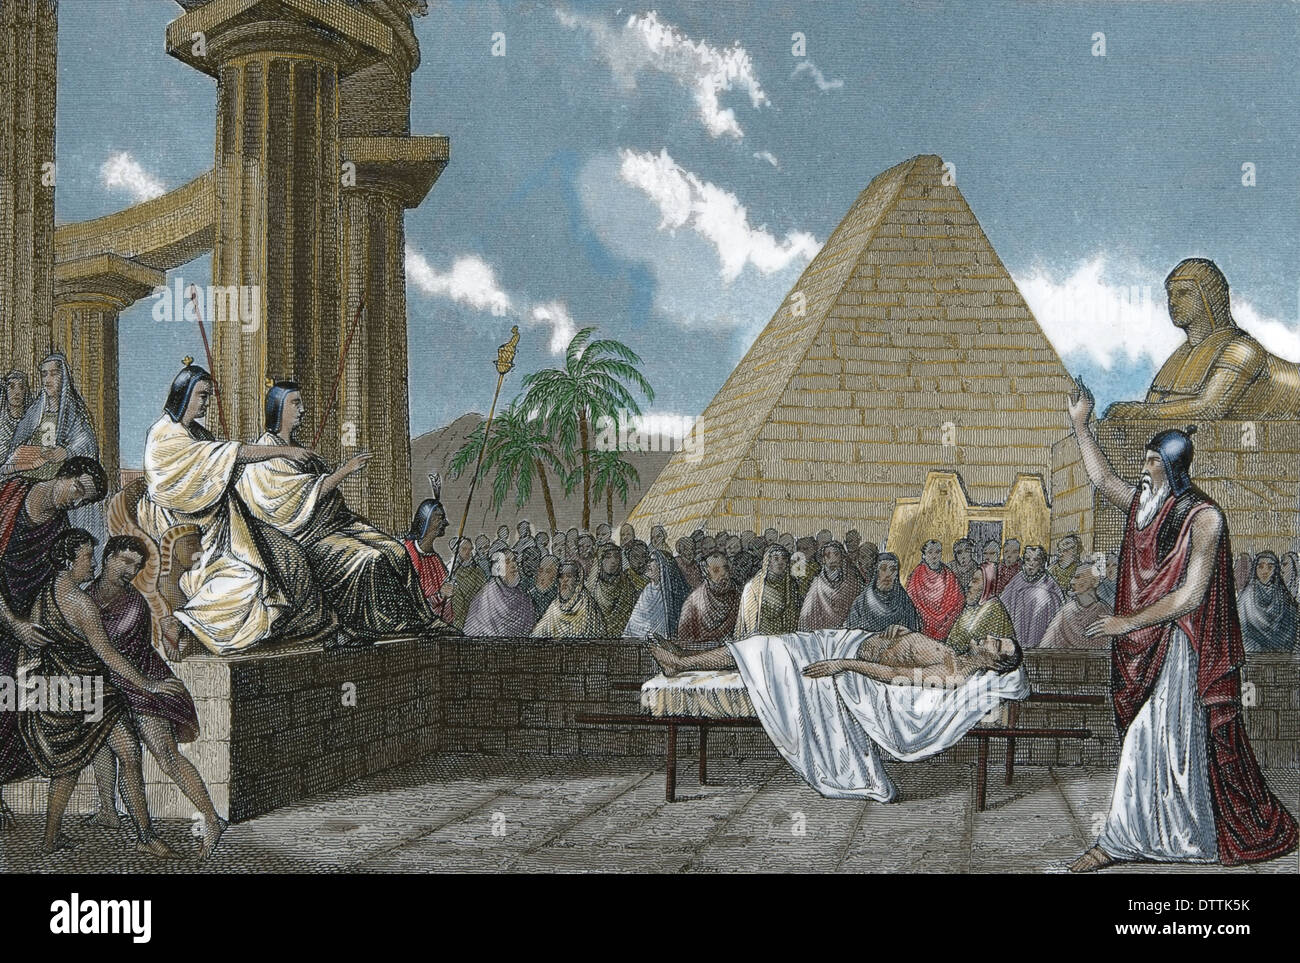 Ancient Times. Egypt. court of the dead. Engraving. (Later colouration). - Stock Image